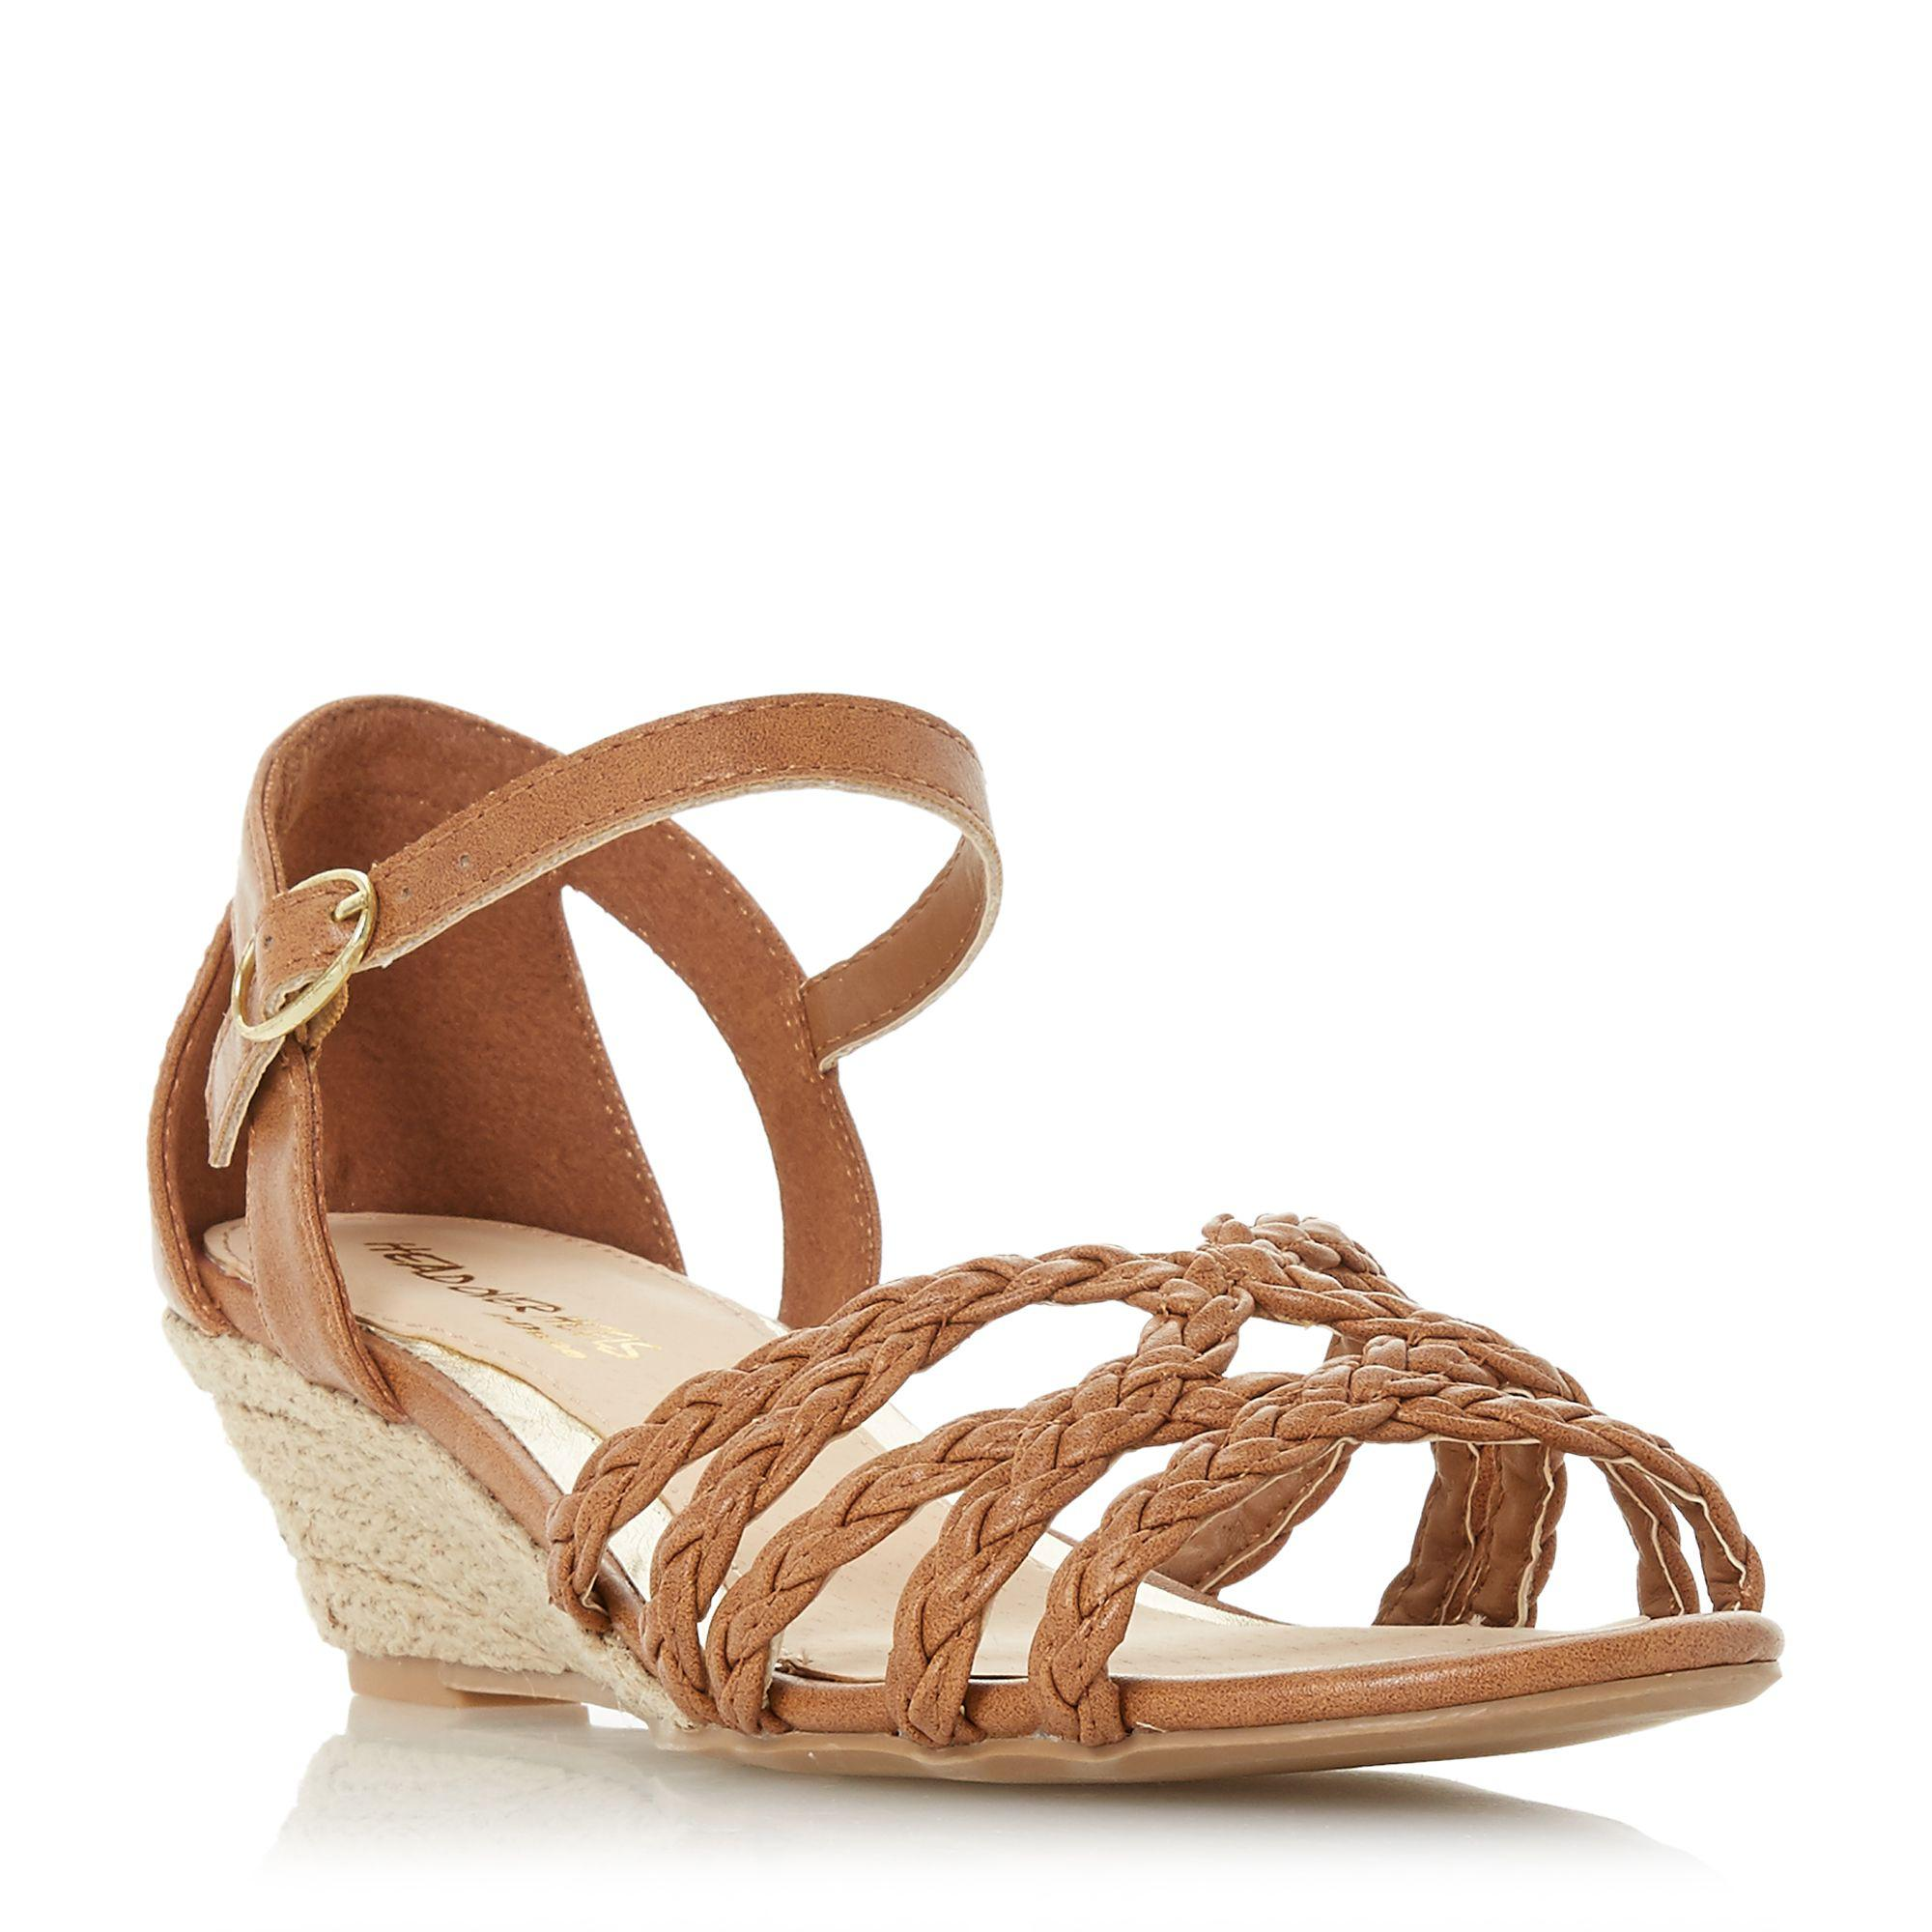 b5f125f1271a Dune Kourt Two Part Espadrille Wedge Sandals in Brown - Lyst